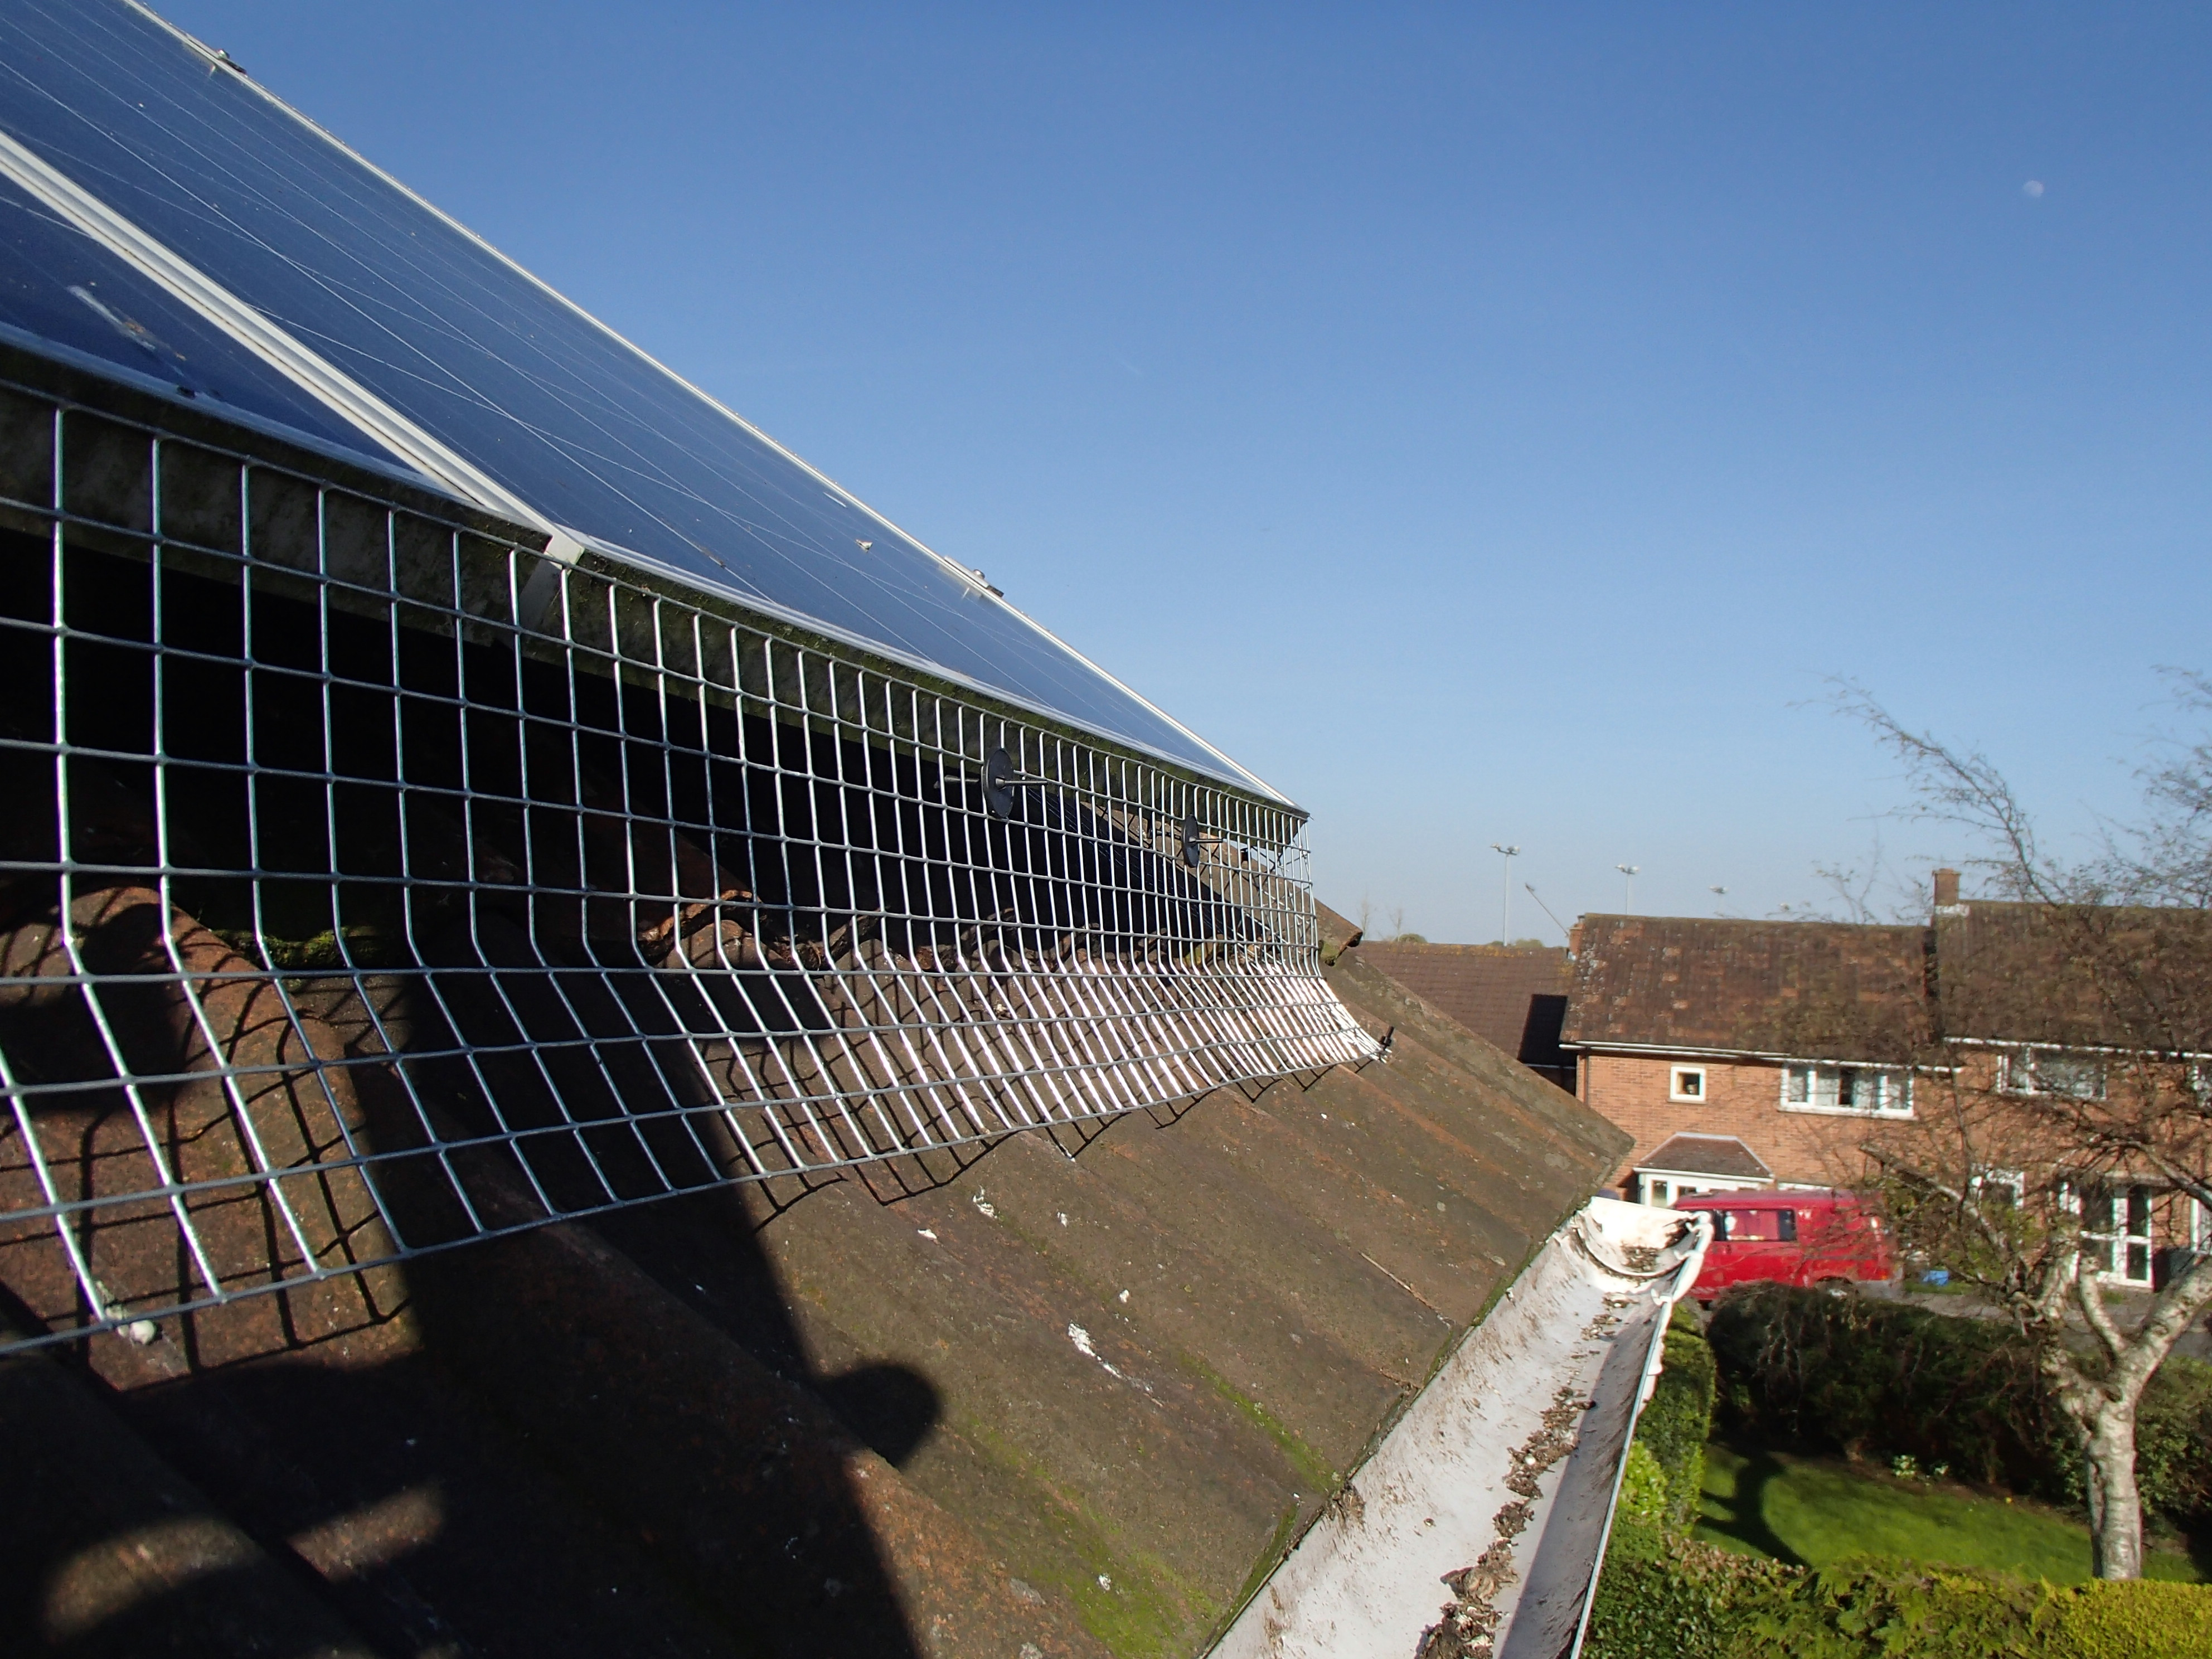 proofing solar panels from pigeons_5